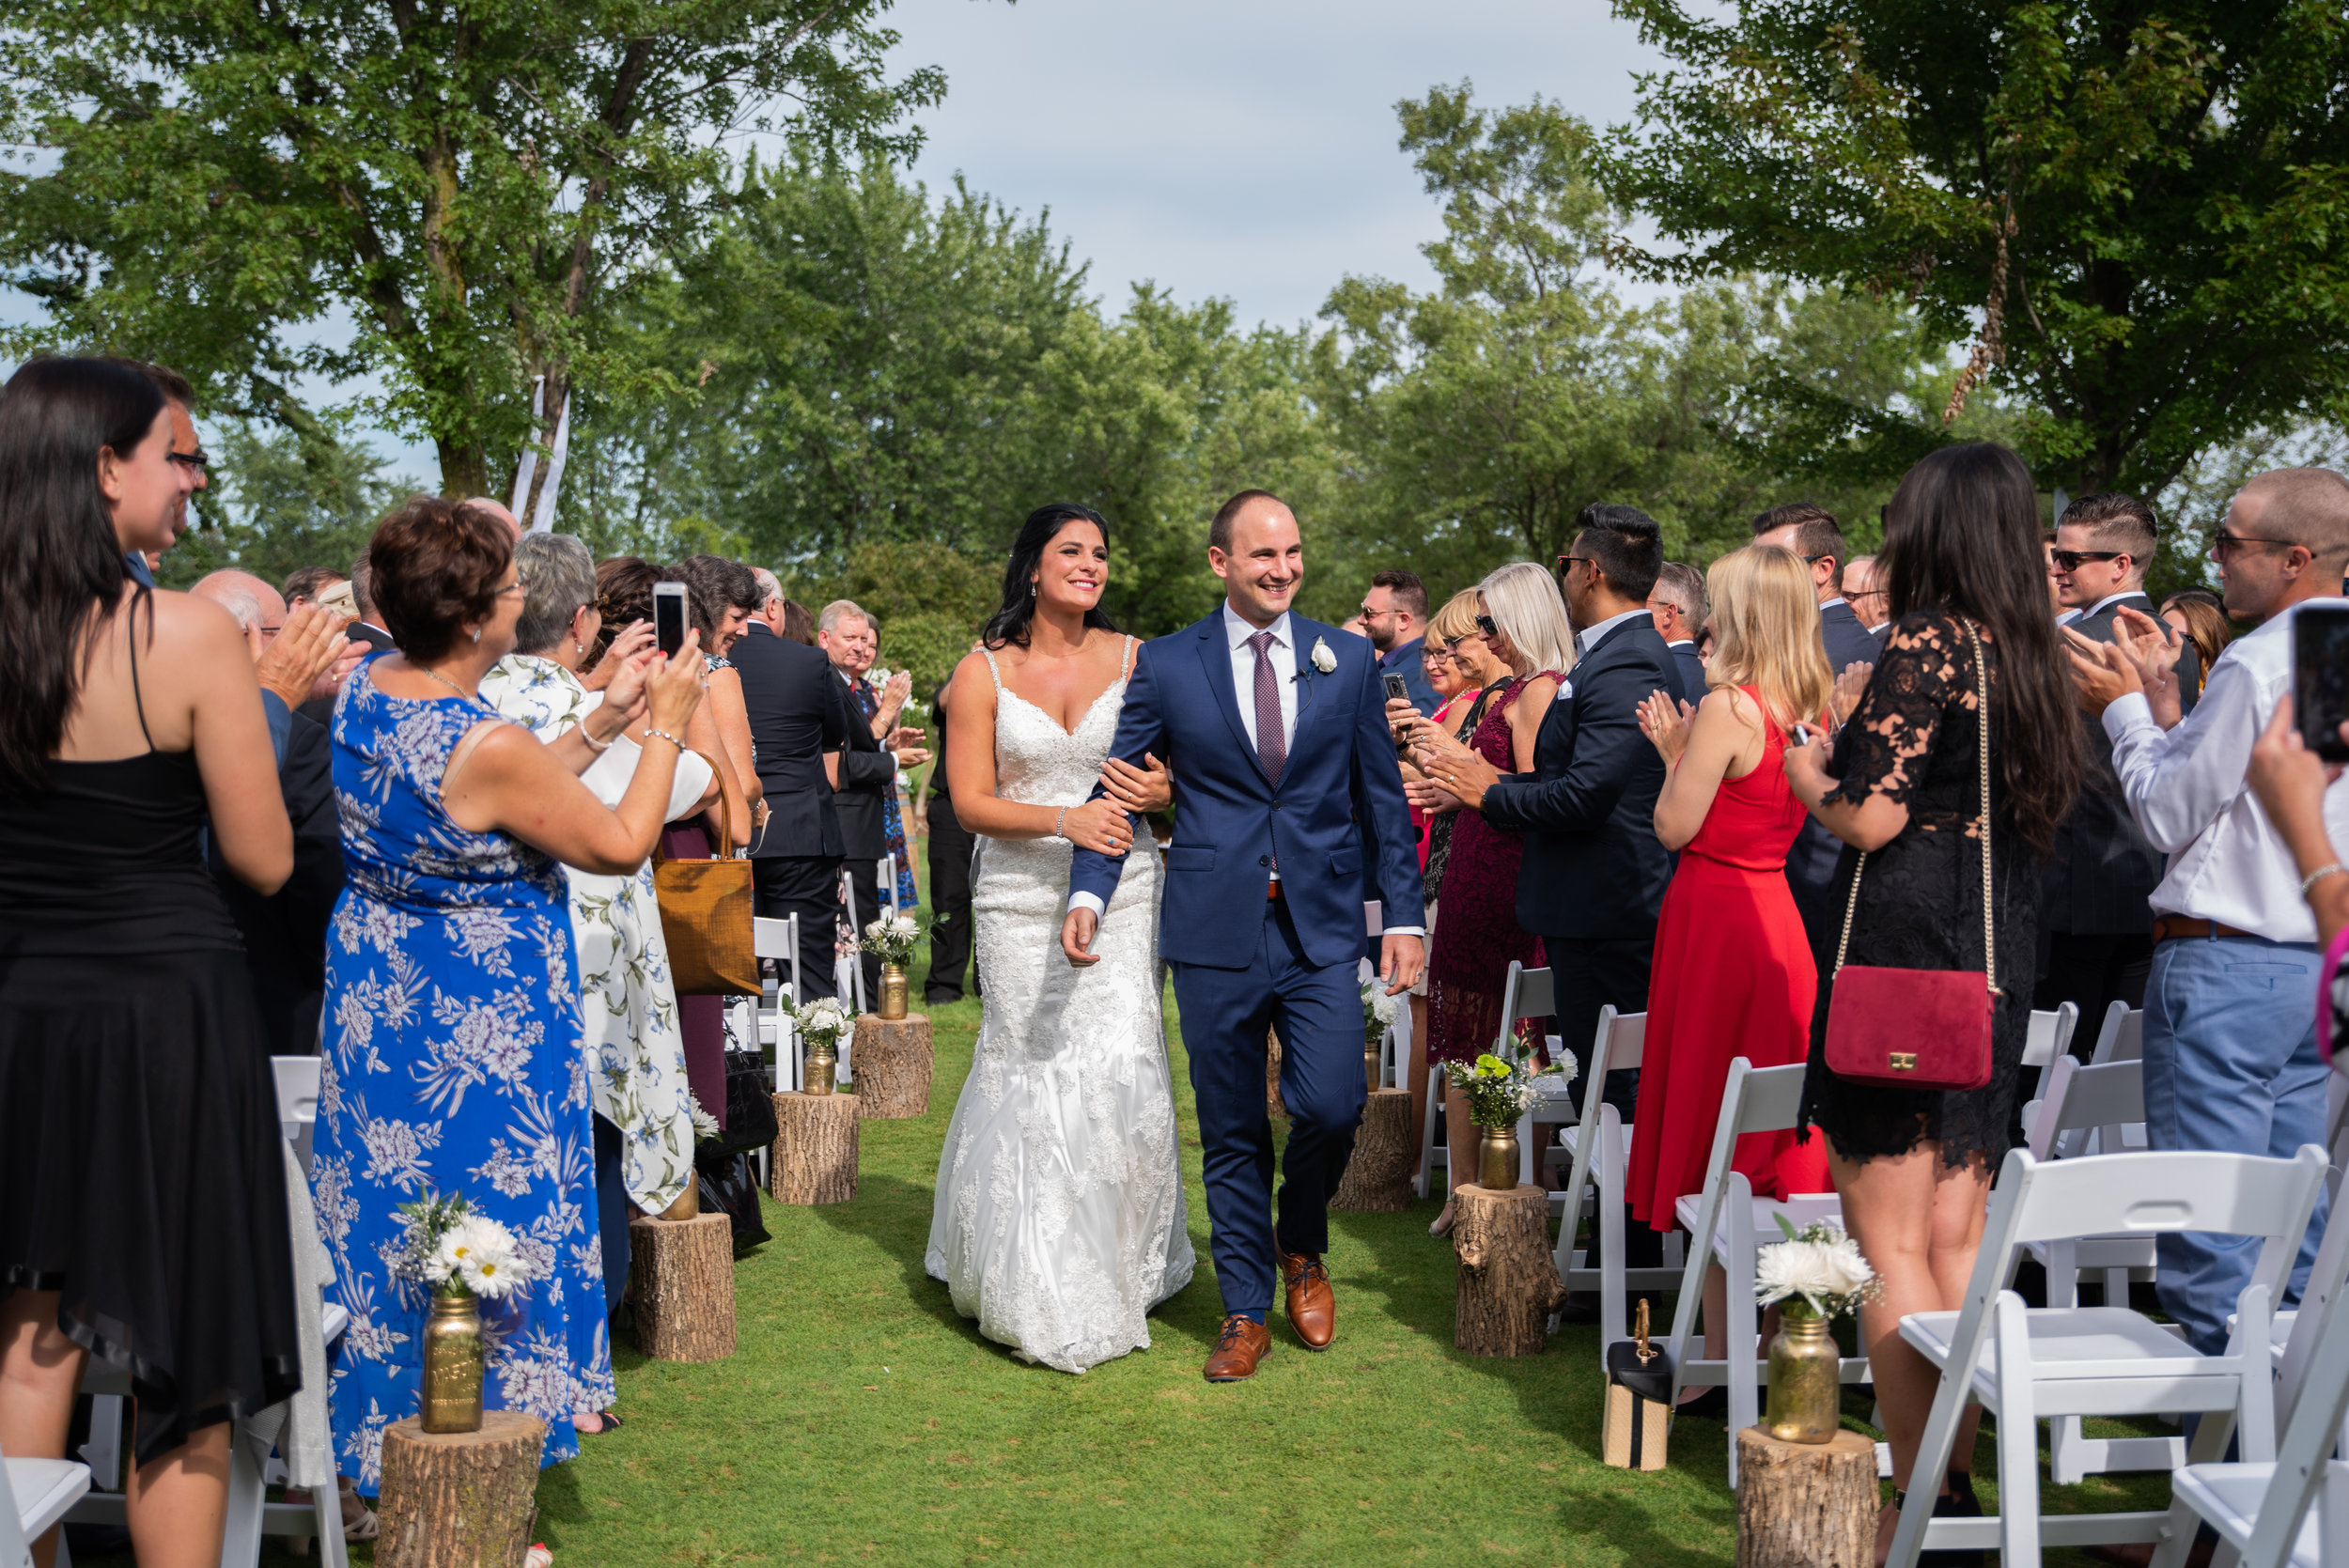 St. Catharines golf and country club wedding with soundslikeyellowphotography